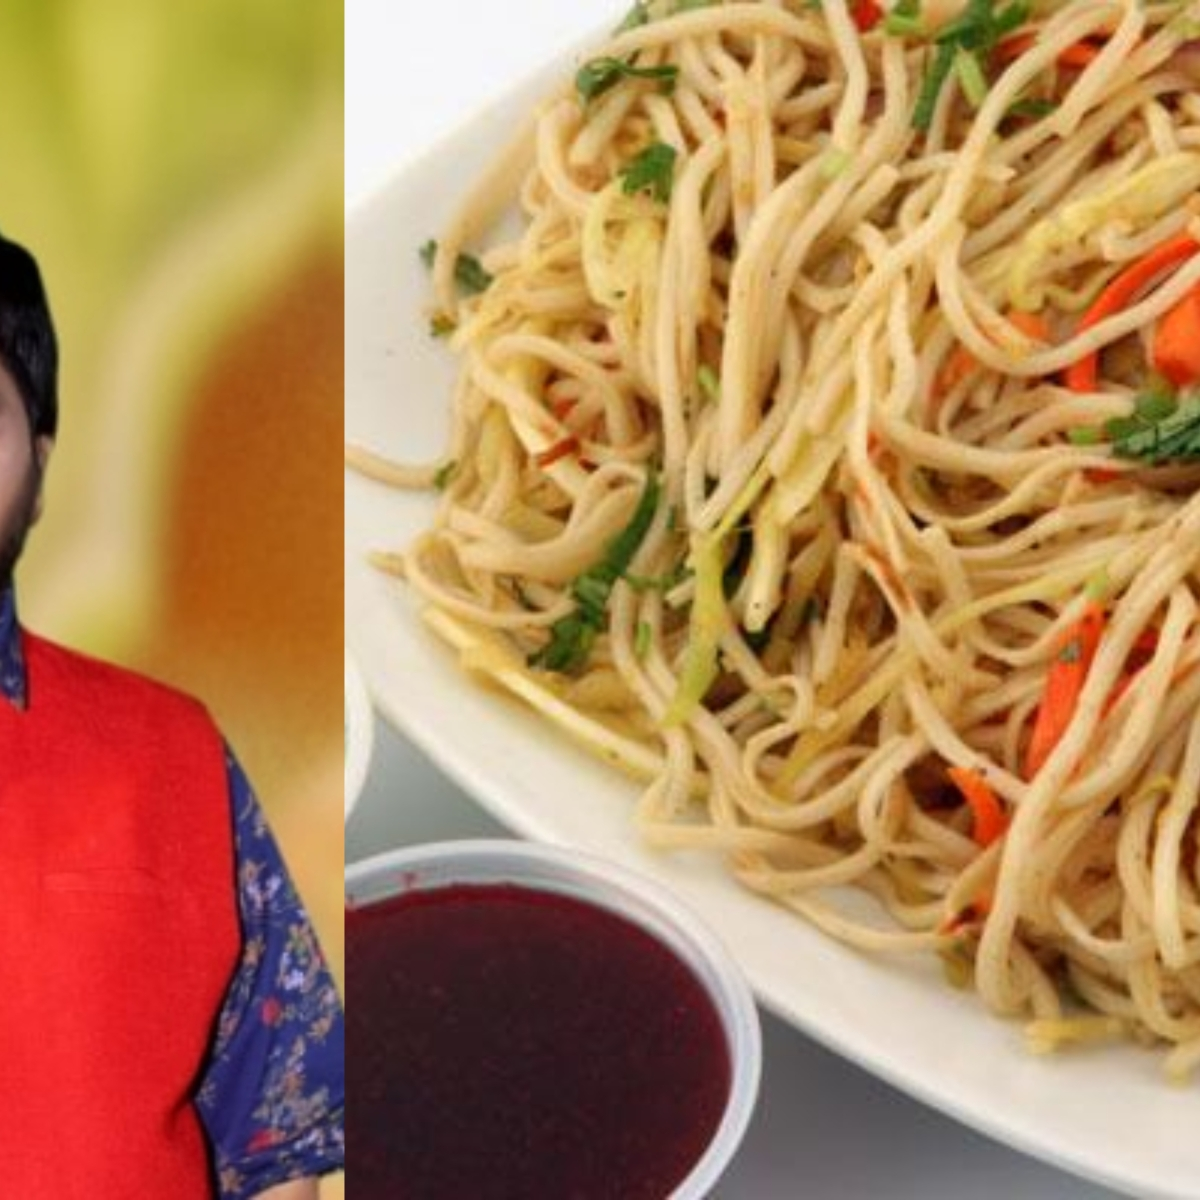 Athawale's Chinese food ban: These Chinese-Indian dishes don't exist in China